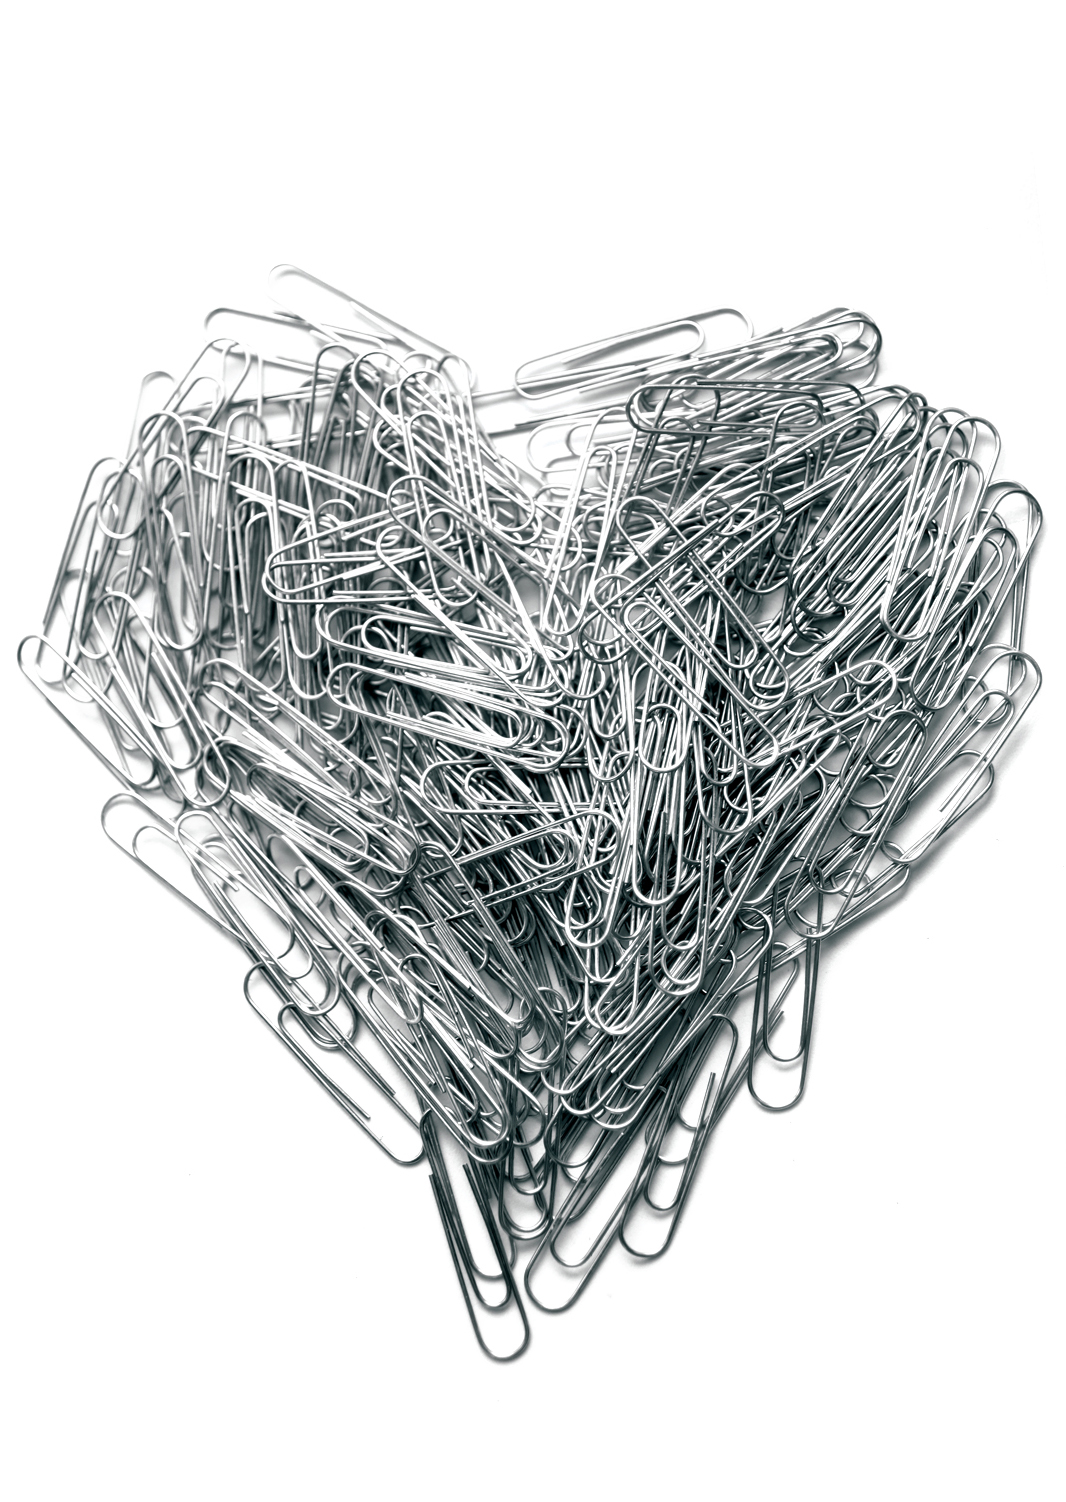 paperclips.jpg